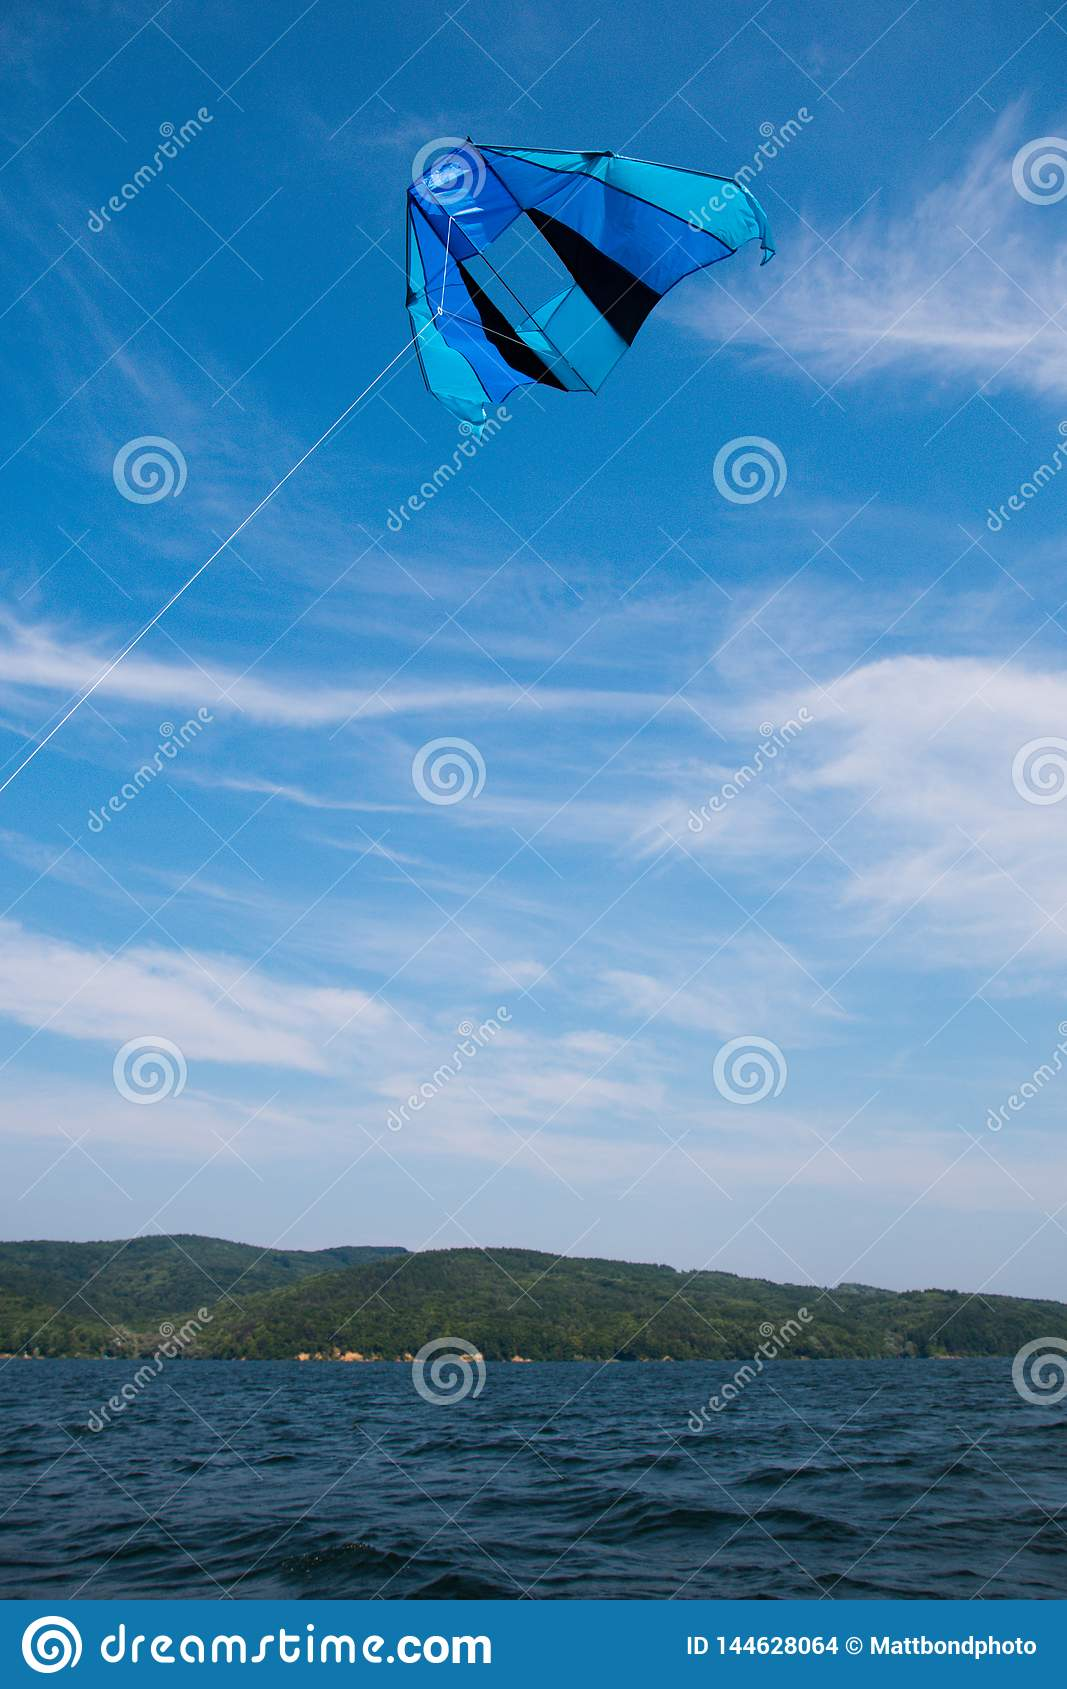 Blue kite on blue sky over water